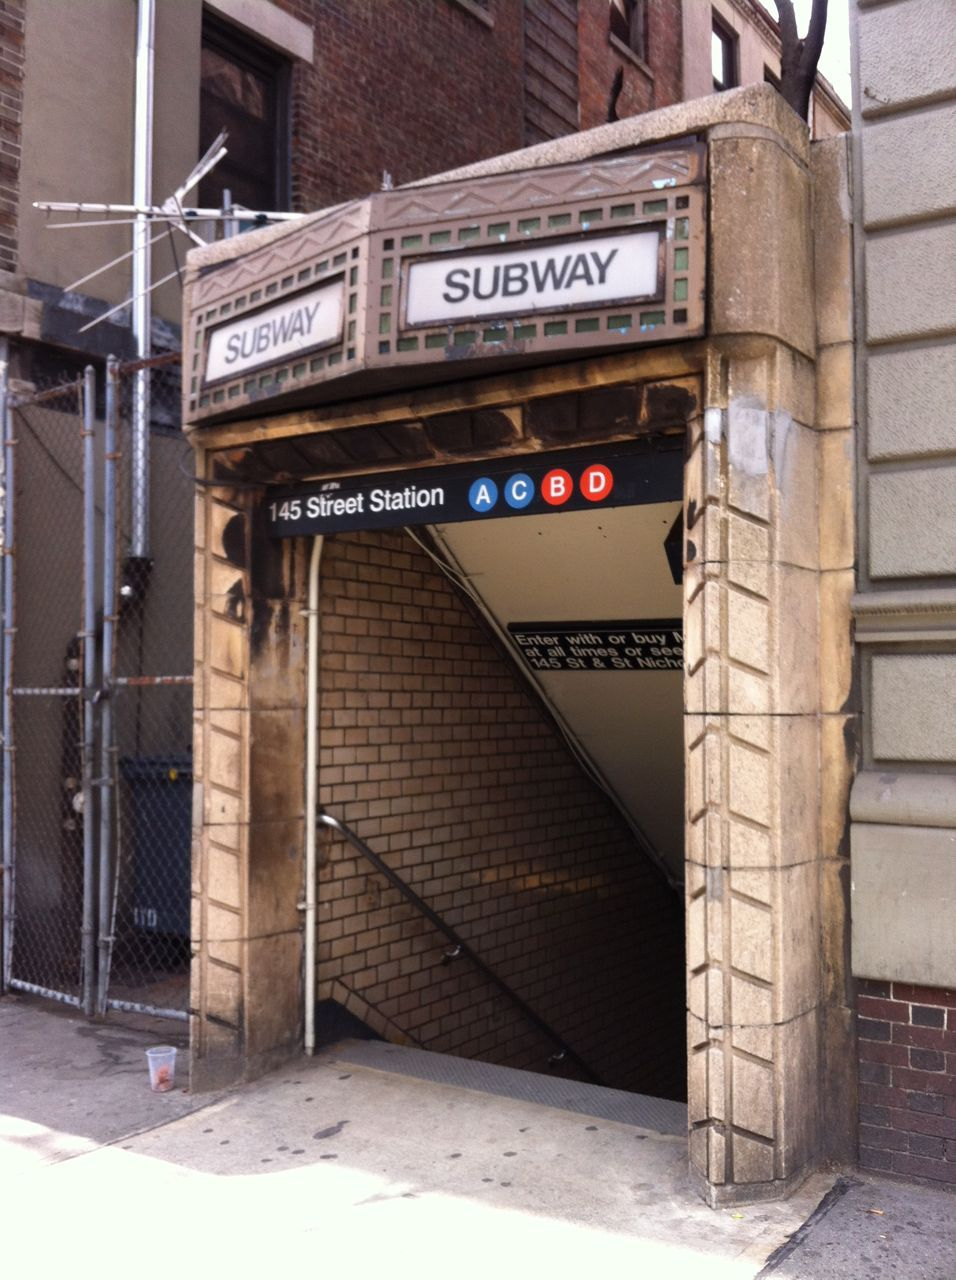 New York Subway Map Entrances.Entrance To The 145th Street Station In Sugar Hill Music Video In